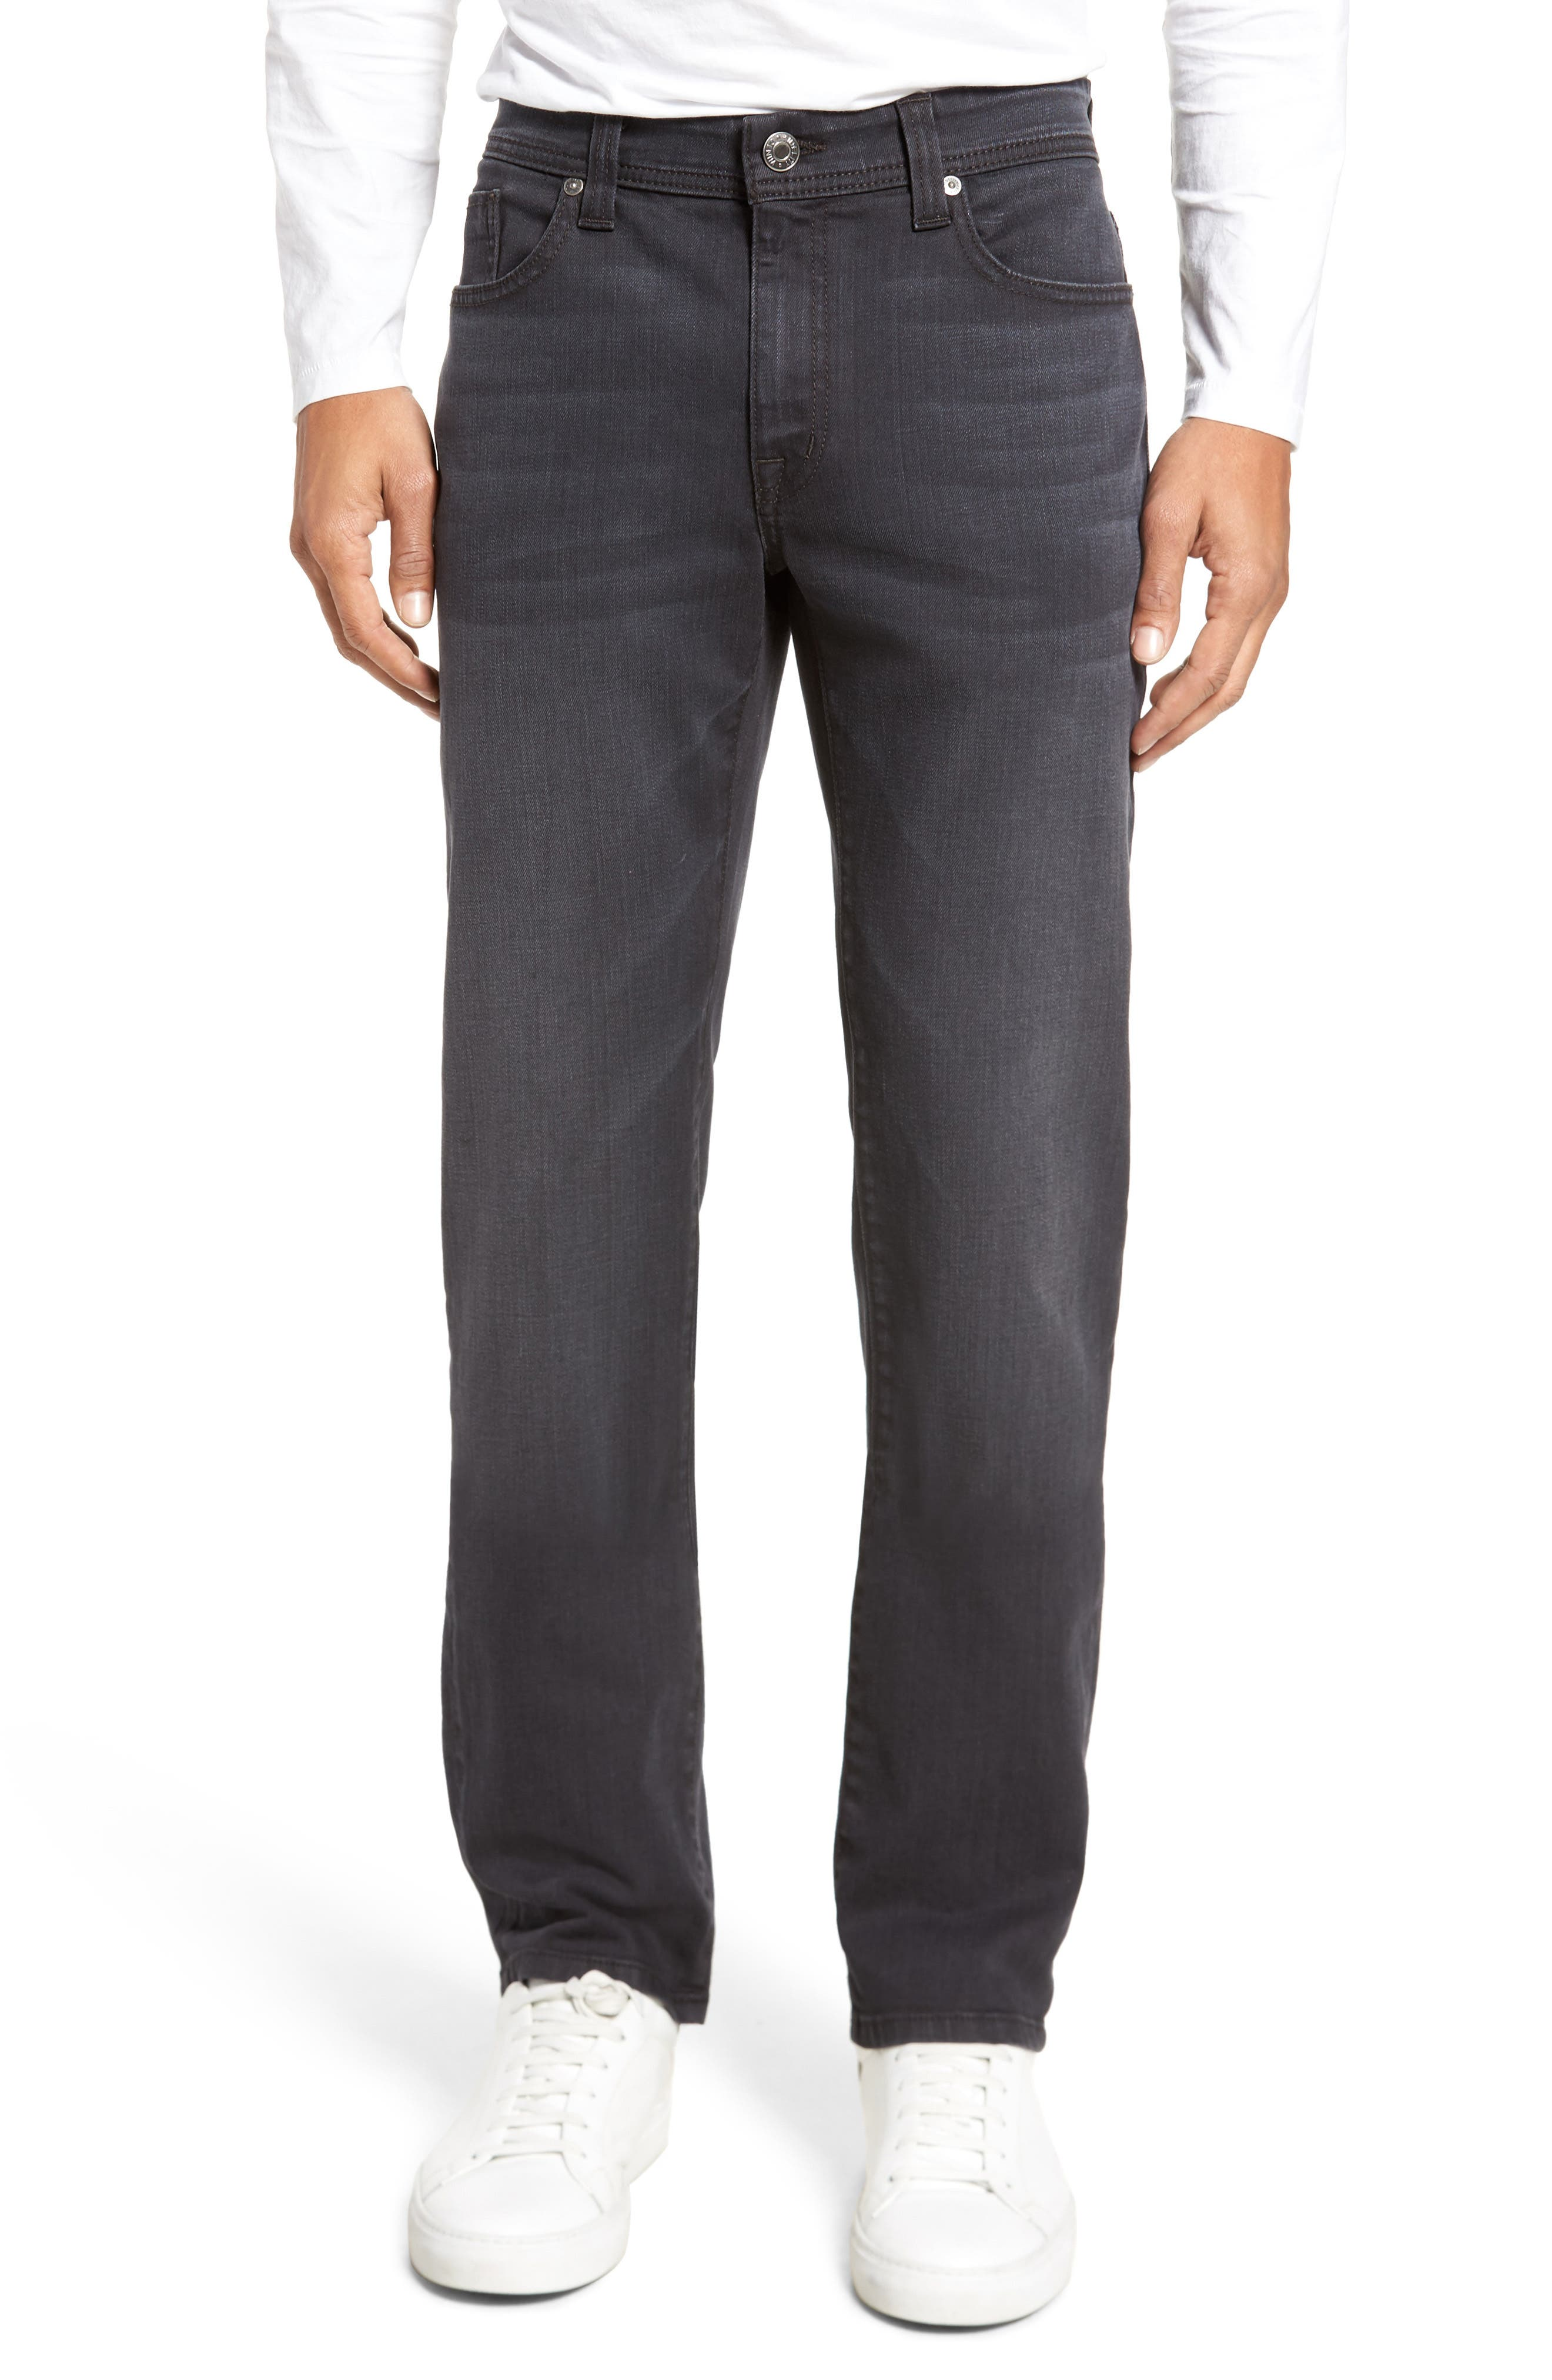 Jimmy Slim Straight Fit Jeans,                         Main,                         color, Banshee